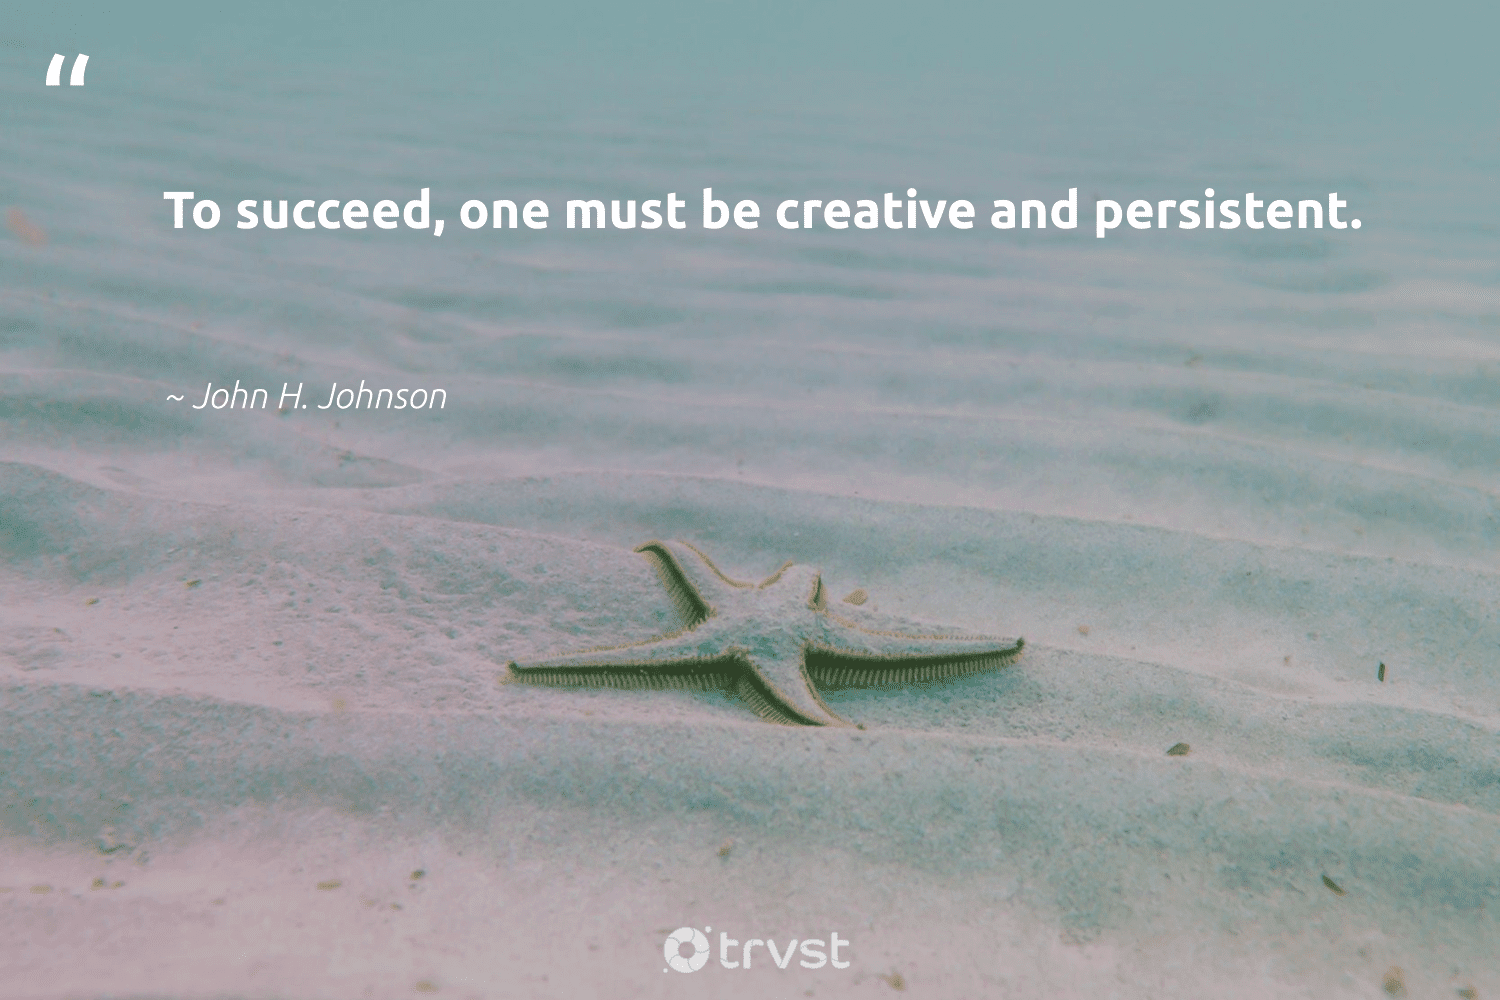 """""""To succeed, one must be creative and persistent.""""  - John H. Johnson #trvst #quotes #creativity #creative #sketchbook #softskills #nevergiveup #beinspired #begreat #futureofwork #dotherightthing #designinspiration"""